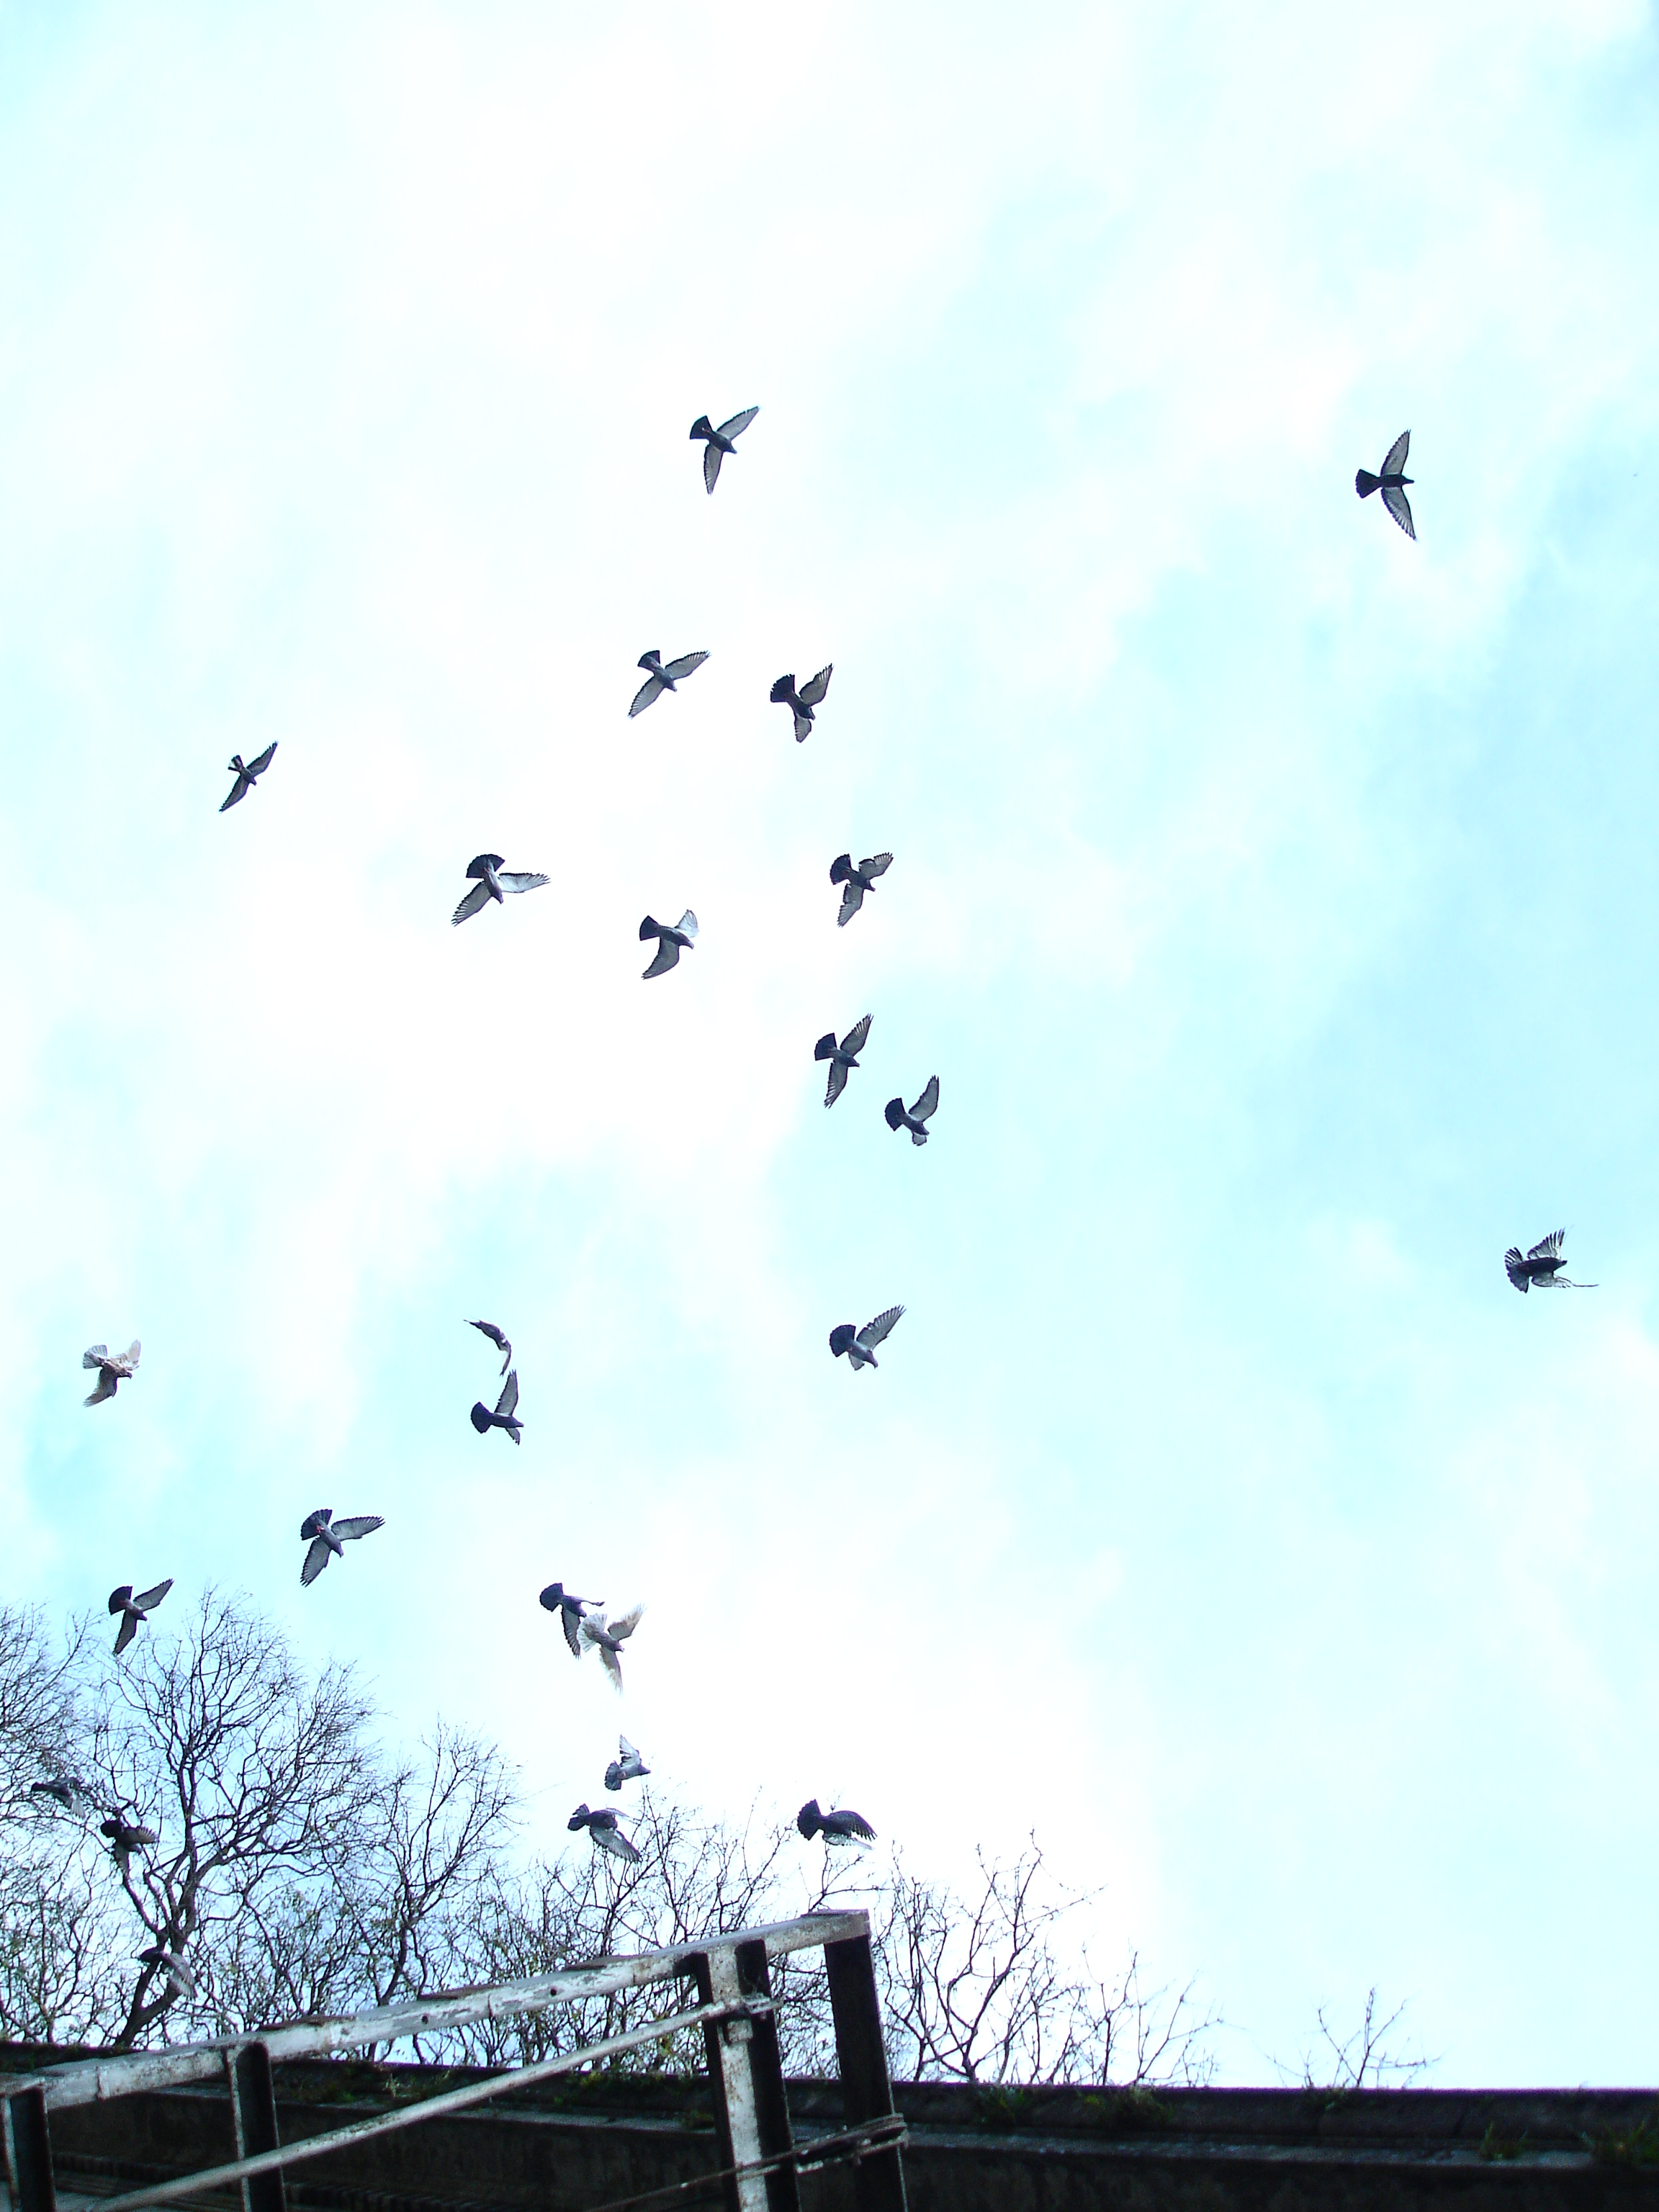 birds flying by jajejijoju on DeviantArt - 2087.0KB